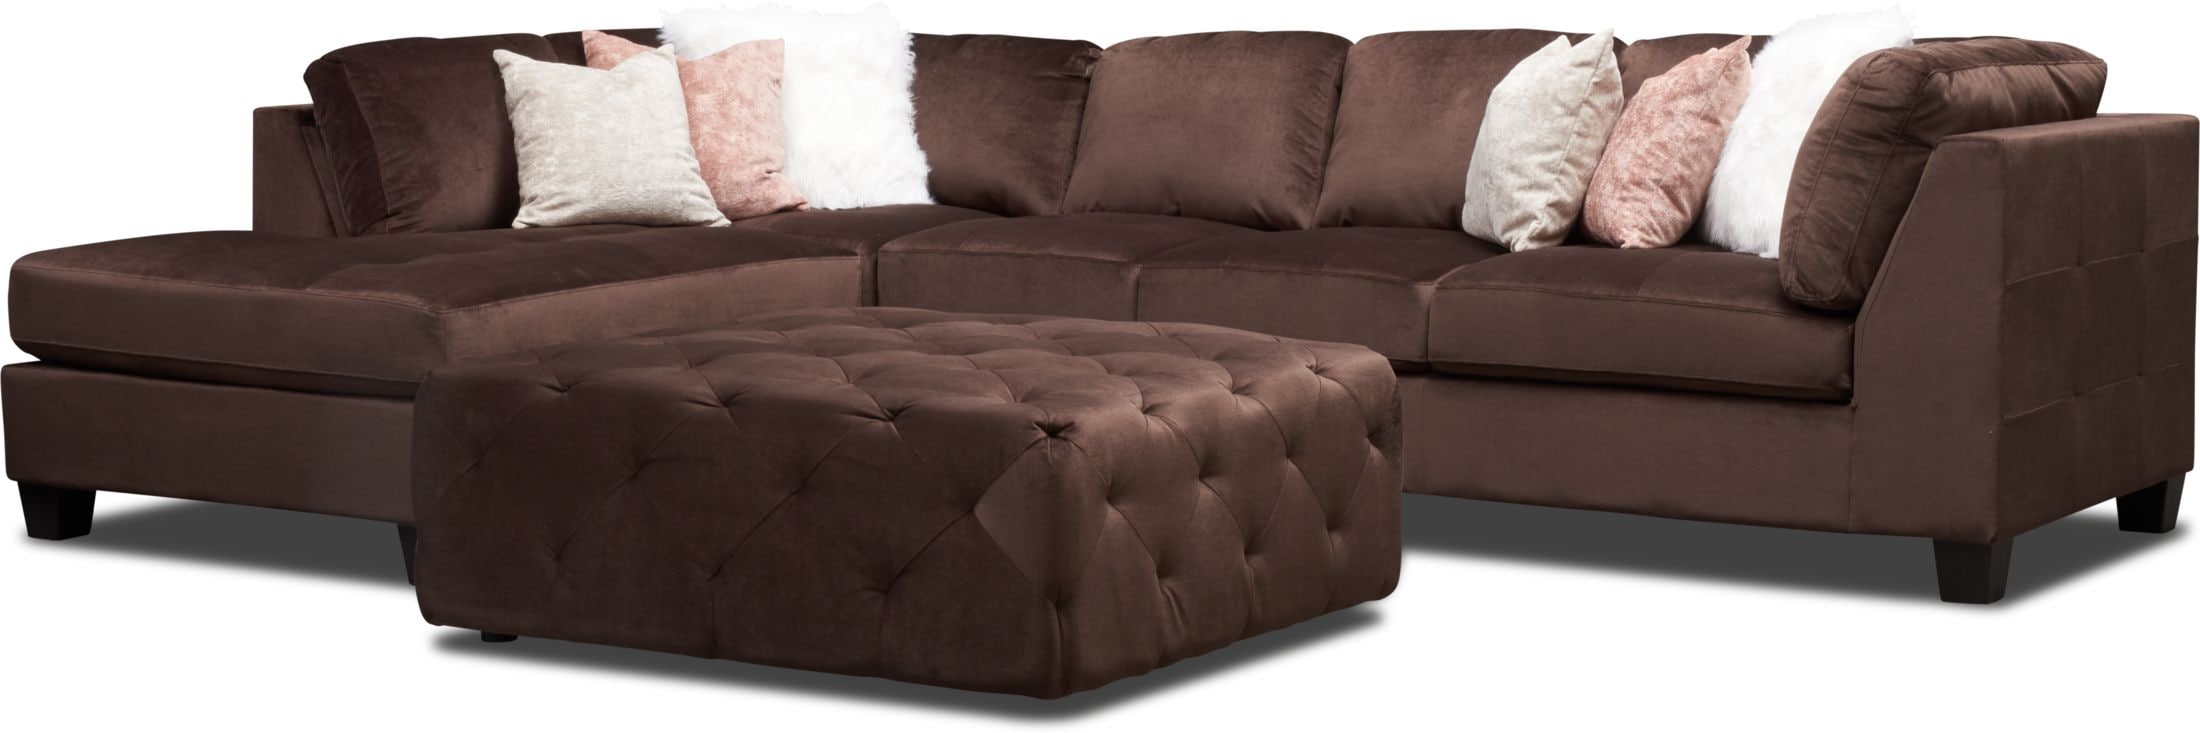 Living Room Furniture - Mackenzie 2-Piece Sectional and Ottoman